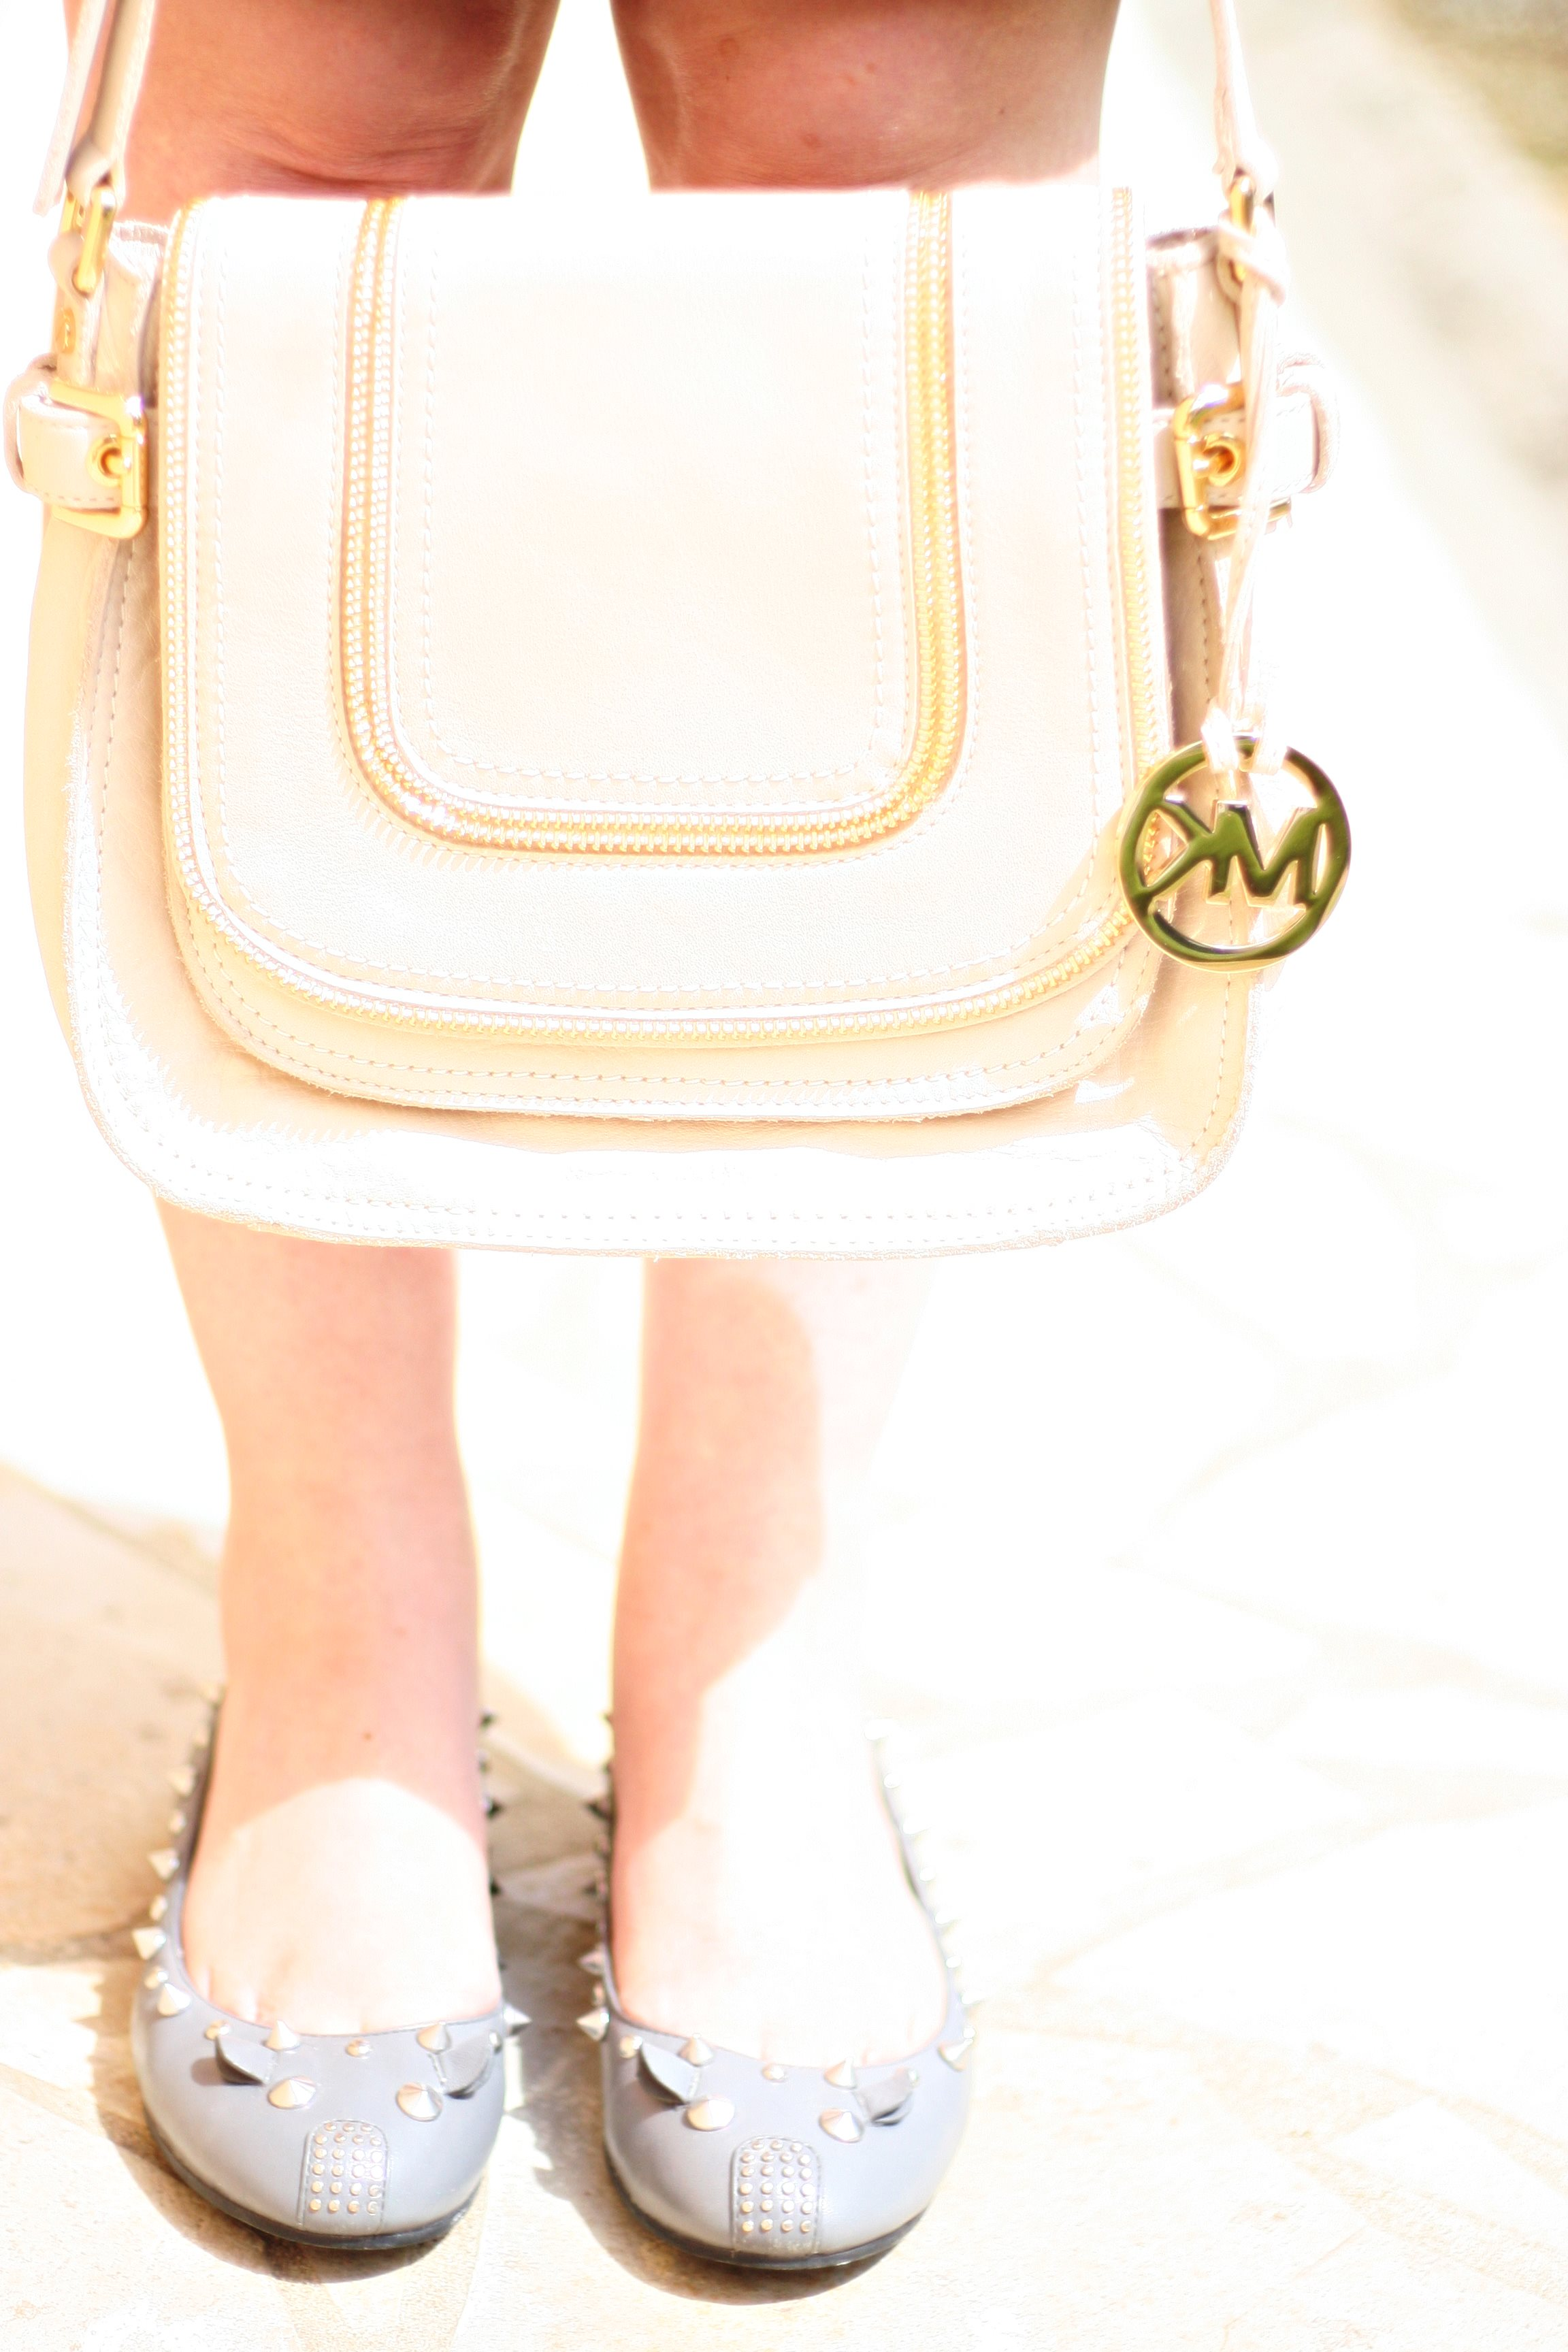 marc-by-marc-jacobs-blog-mode